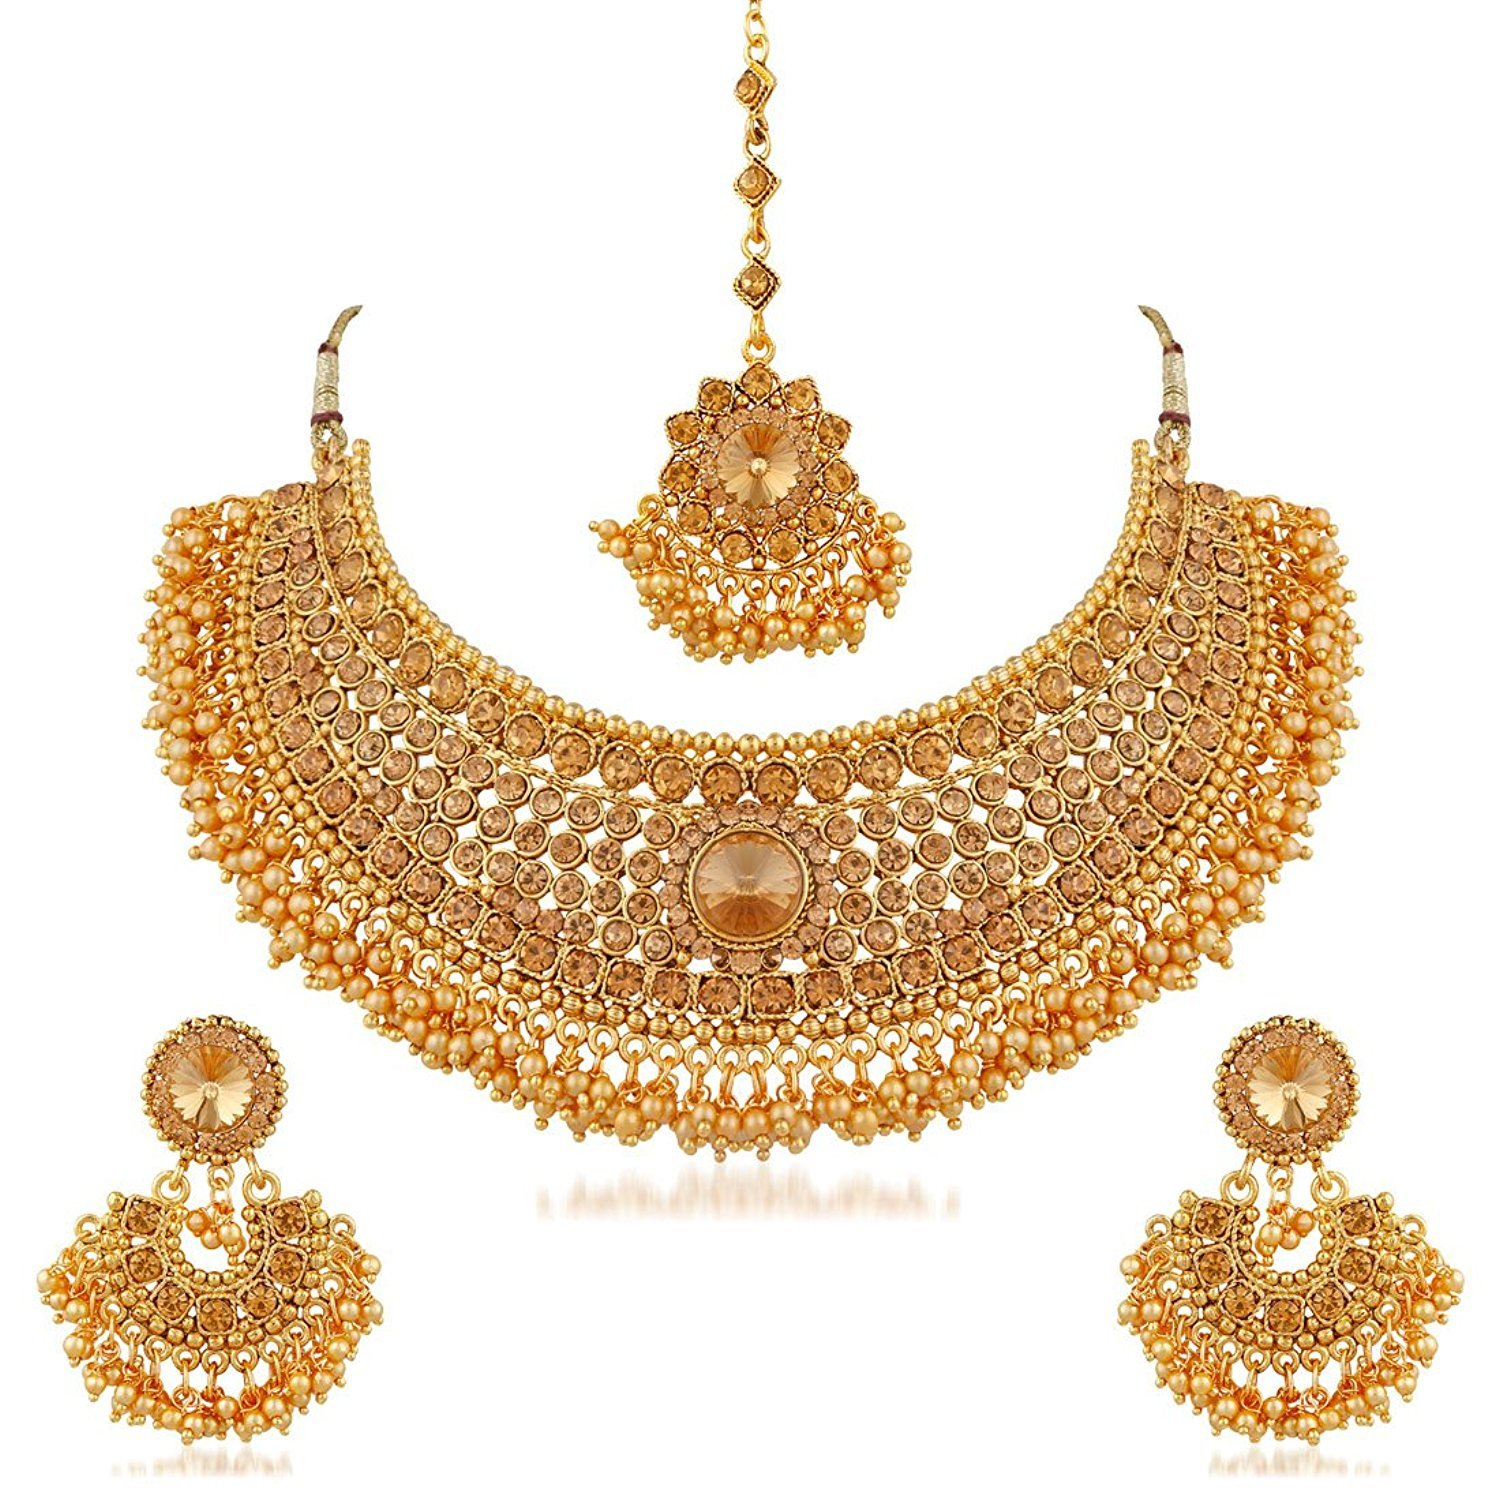 jewellery white prices pearl set item in pakistan price golden